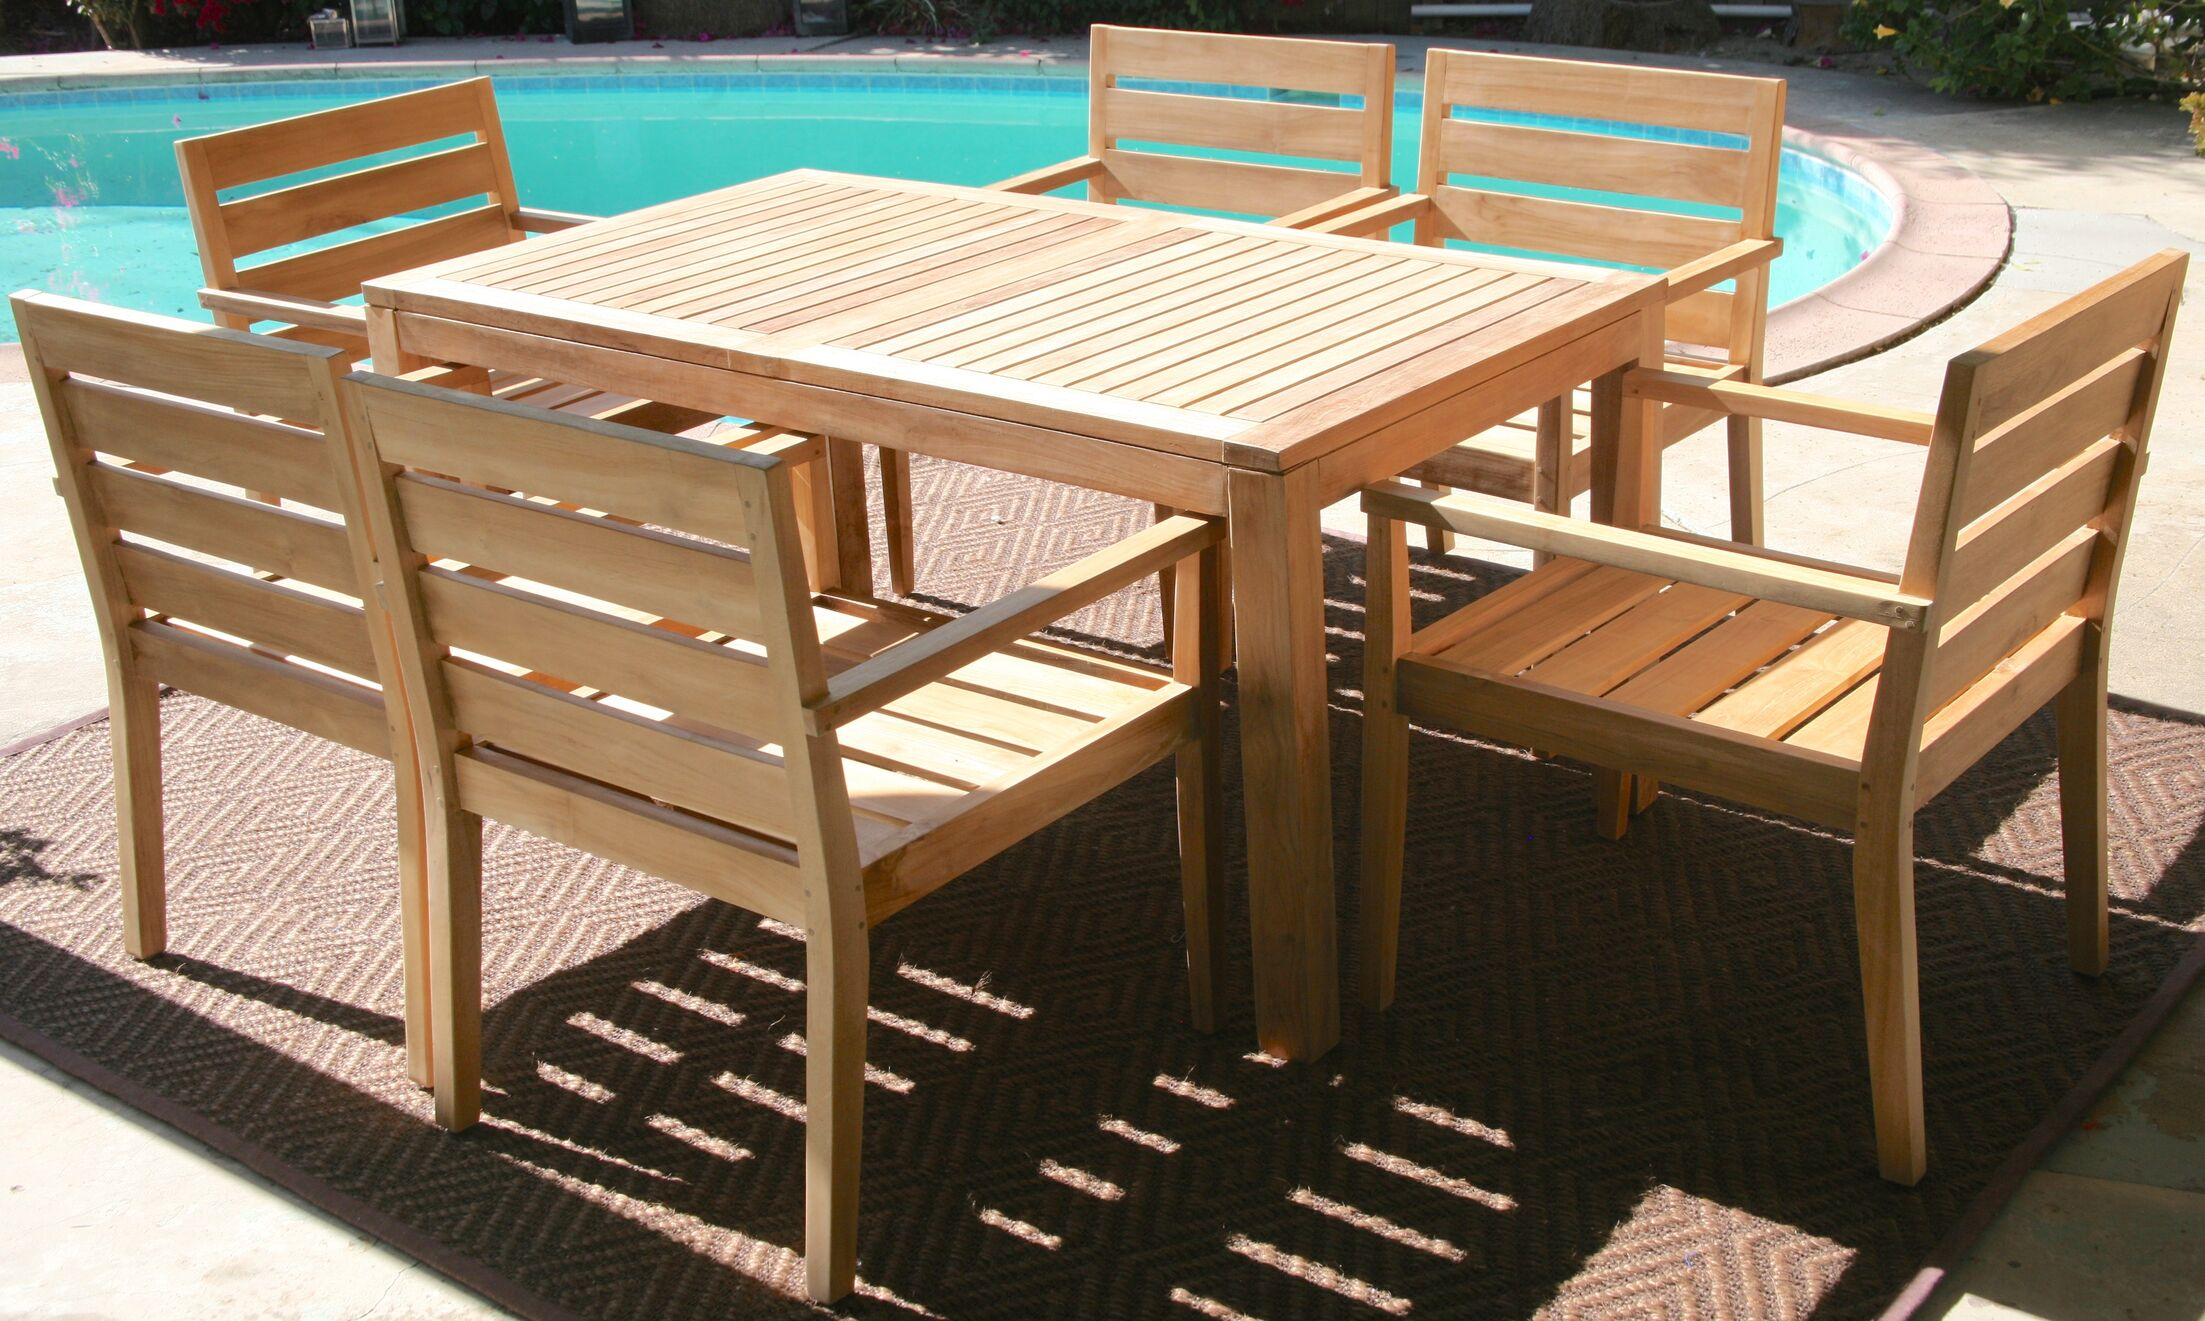 Waterford 7 Piece Teak Dining Set with Sunbrella Cushions Cushion Color: Natural